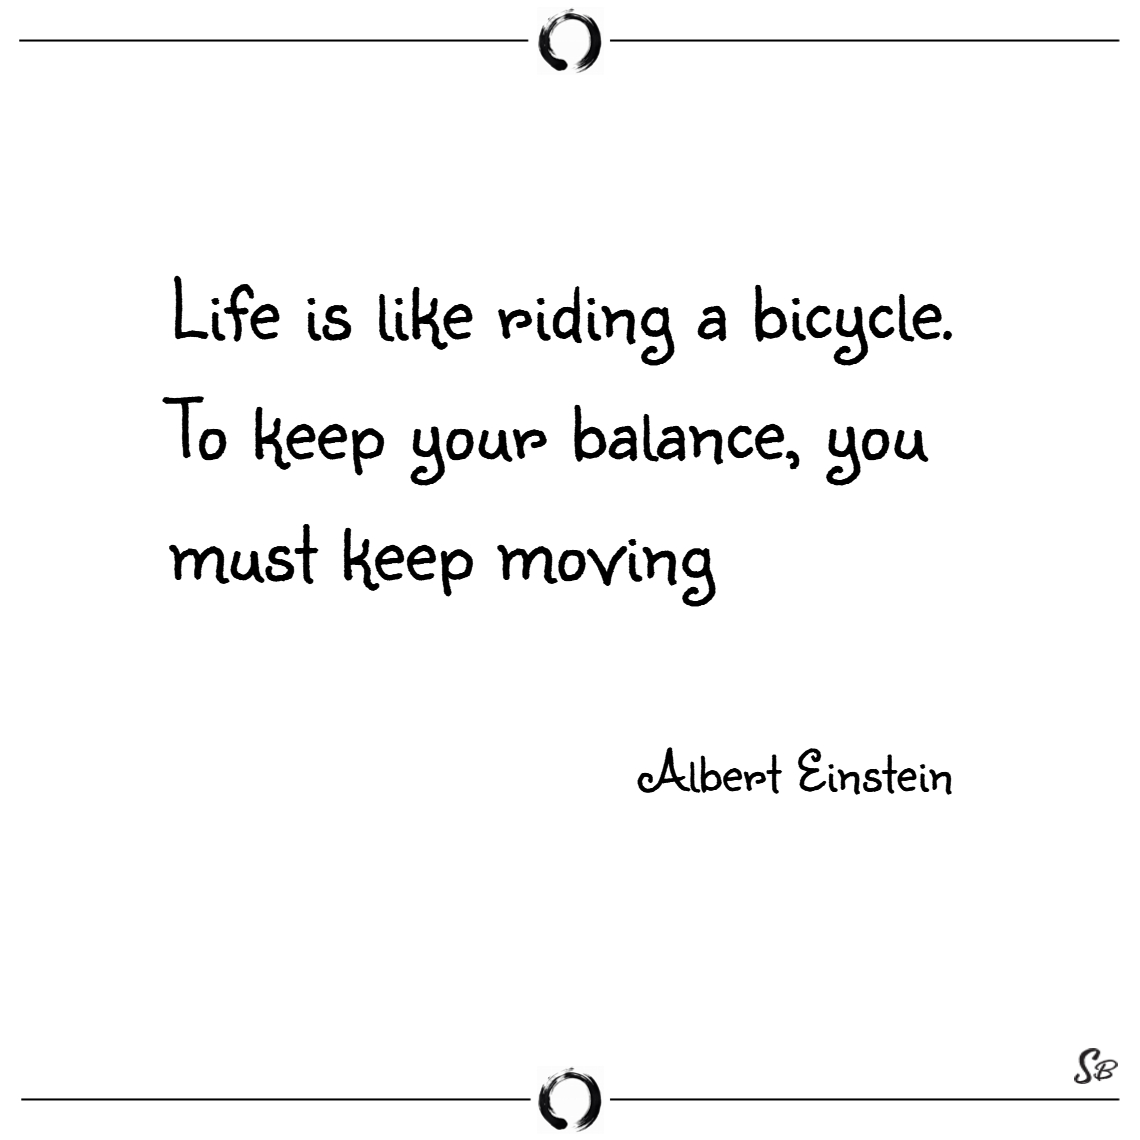 Life is like riding a bicycle. to keep your balanc